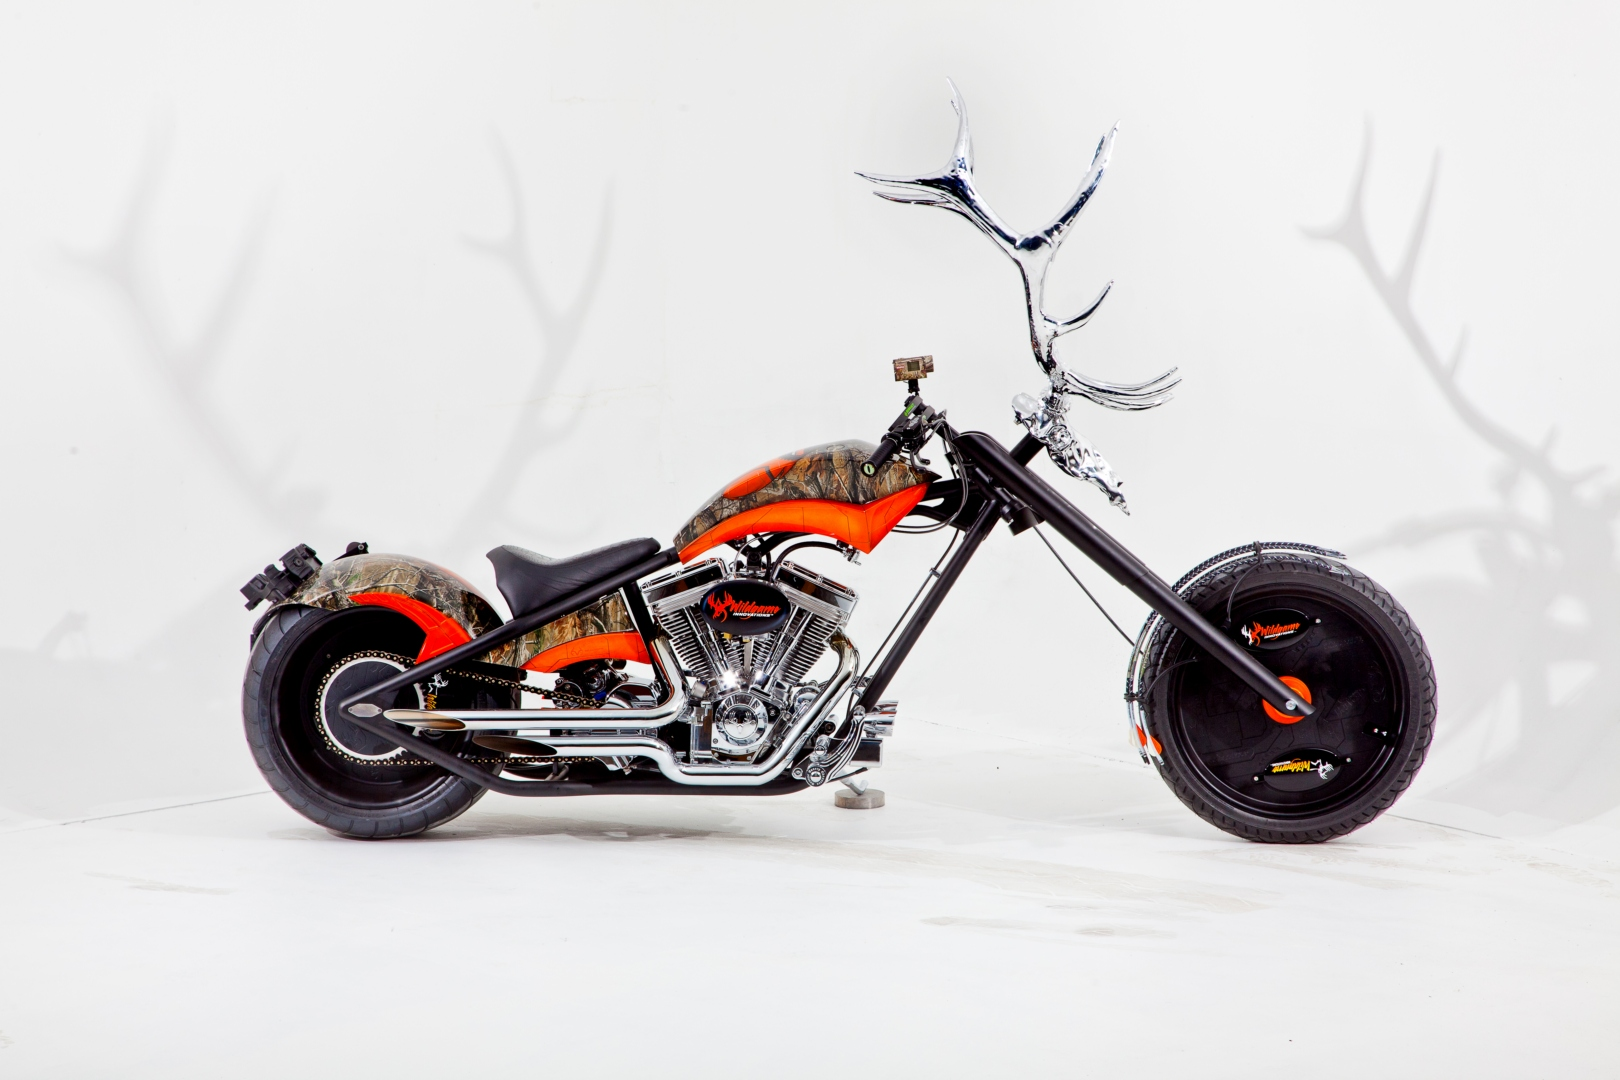 occ electric chopper features led forward lighting. Black Bedroom Furniture Sets. Home Design Ideas